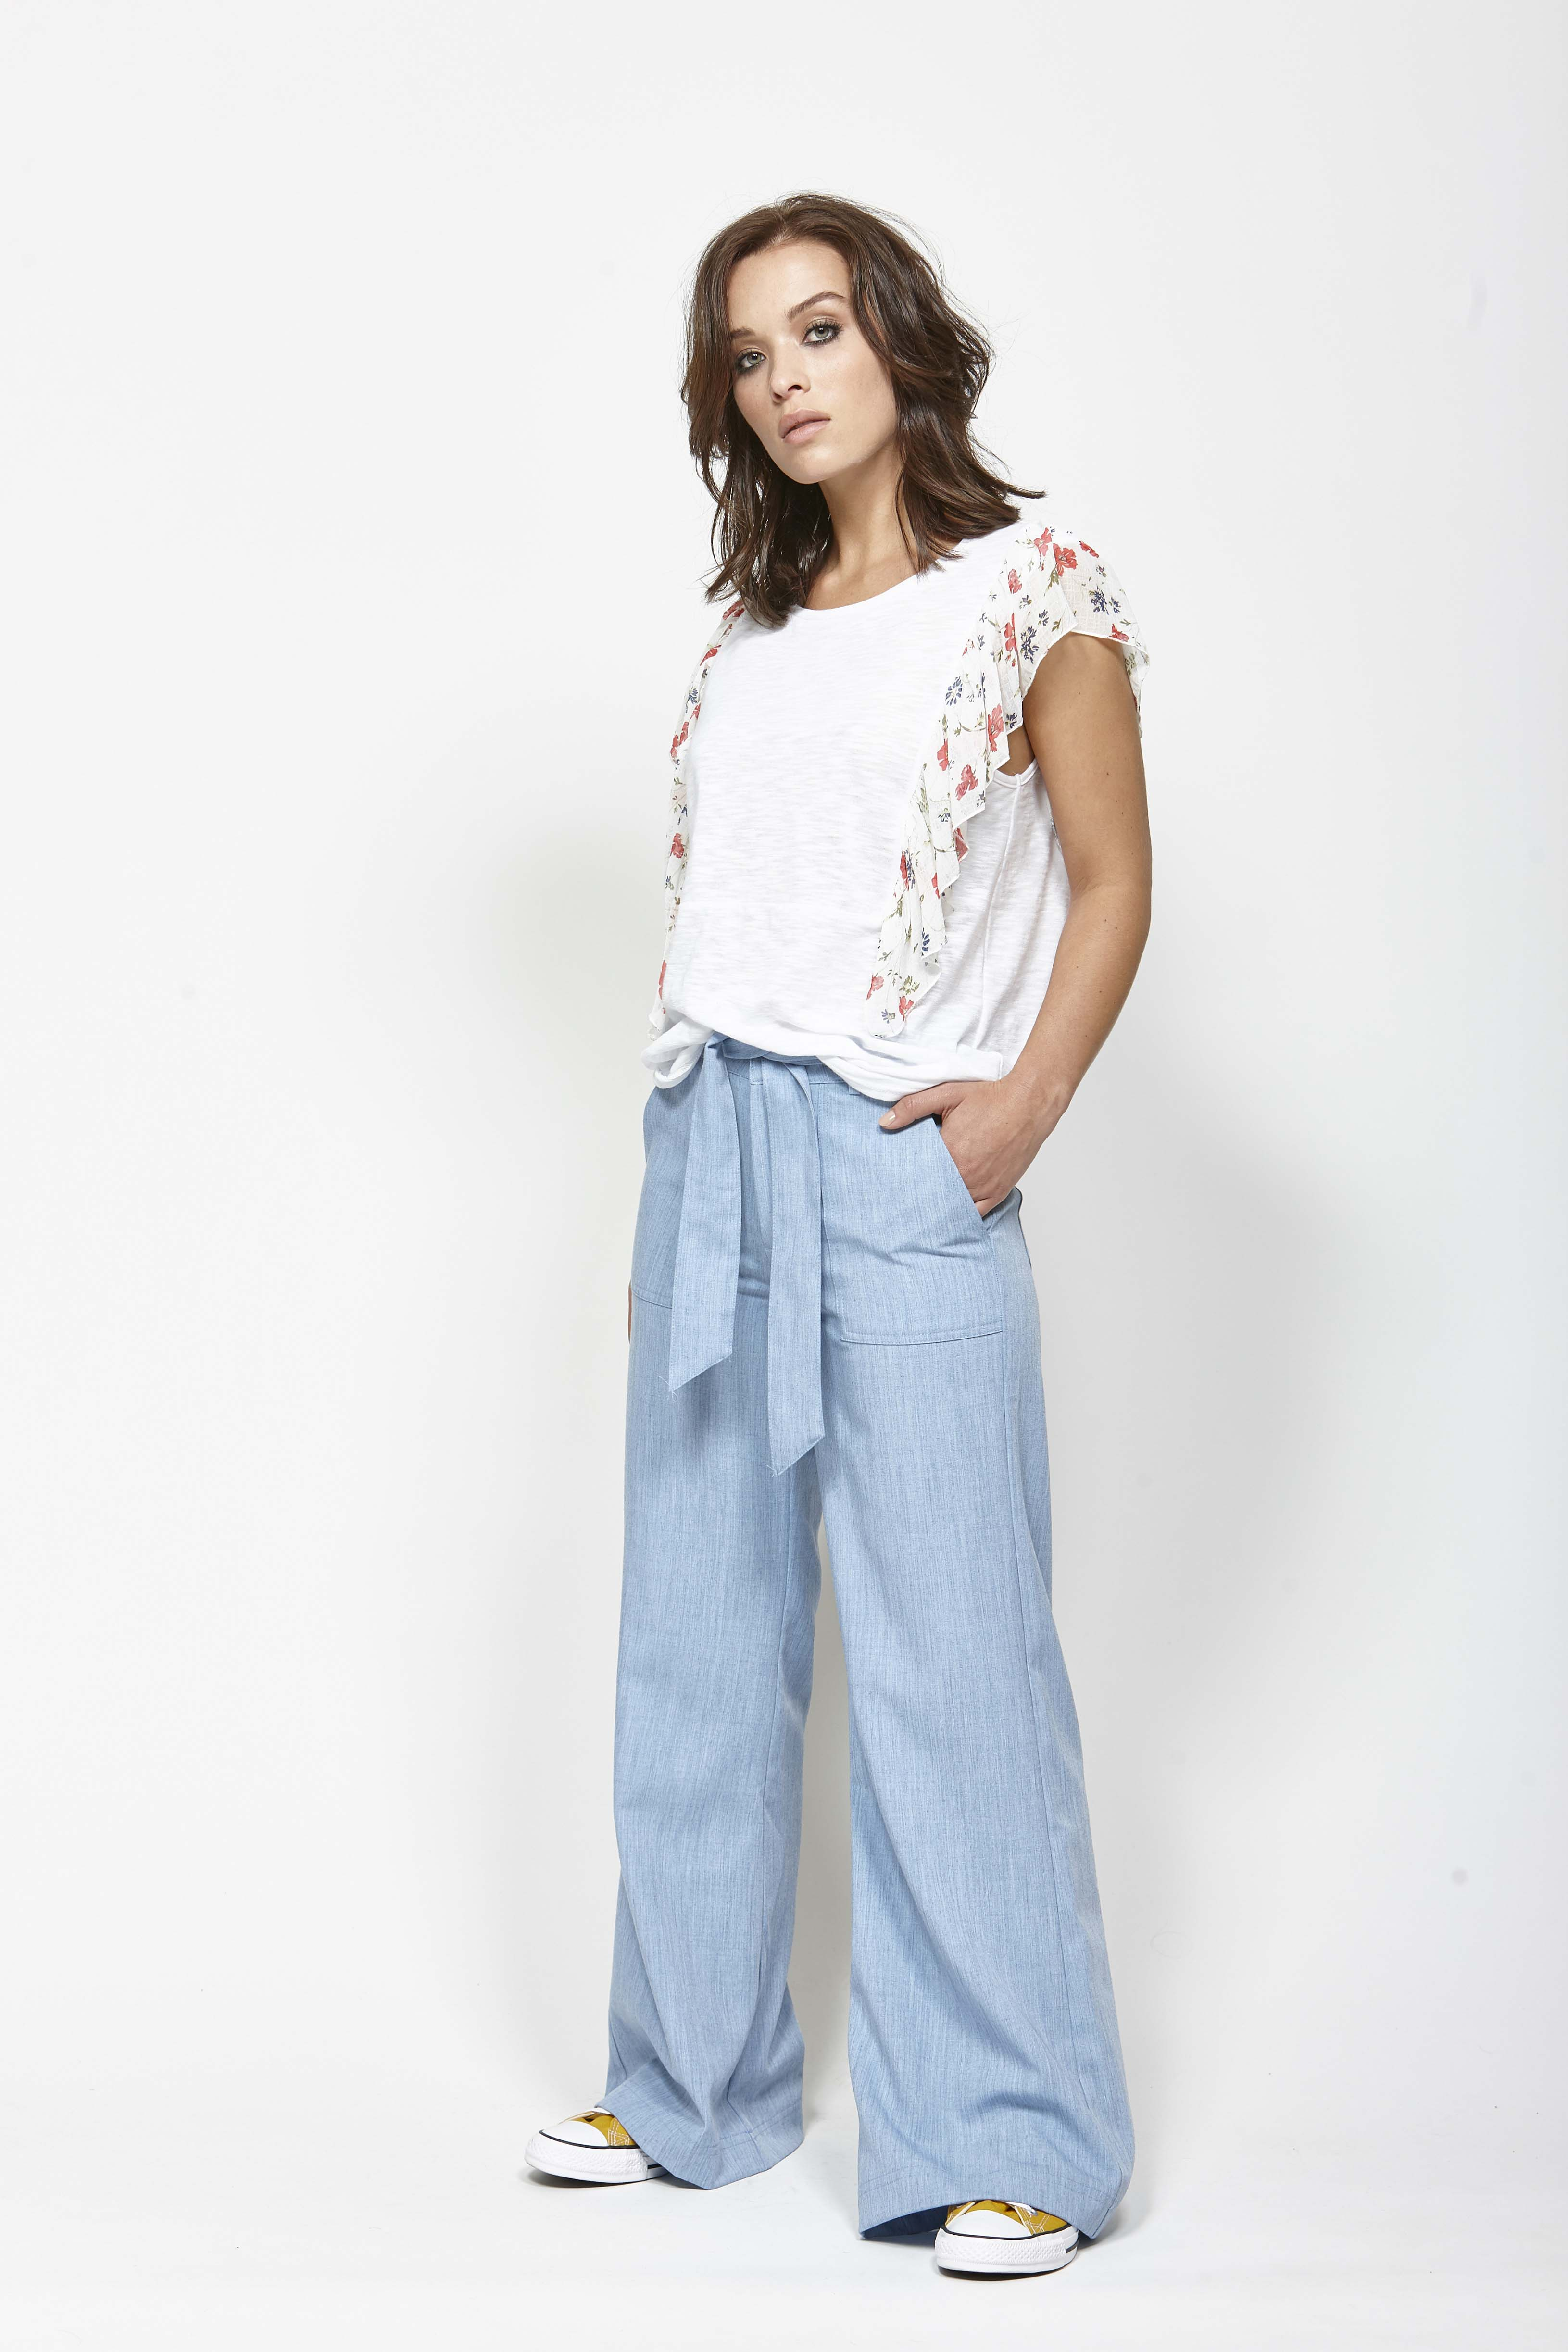 LEO+BE LB1365 Planner Tee, RRP$115.00 & LEO+BE LB1370 Stop Pant, RRP$159.00